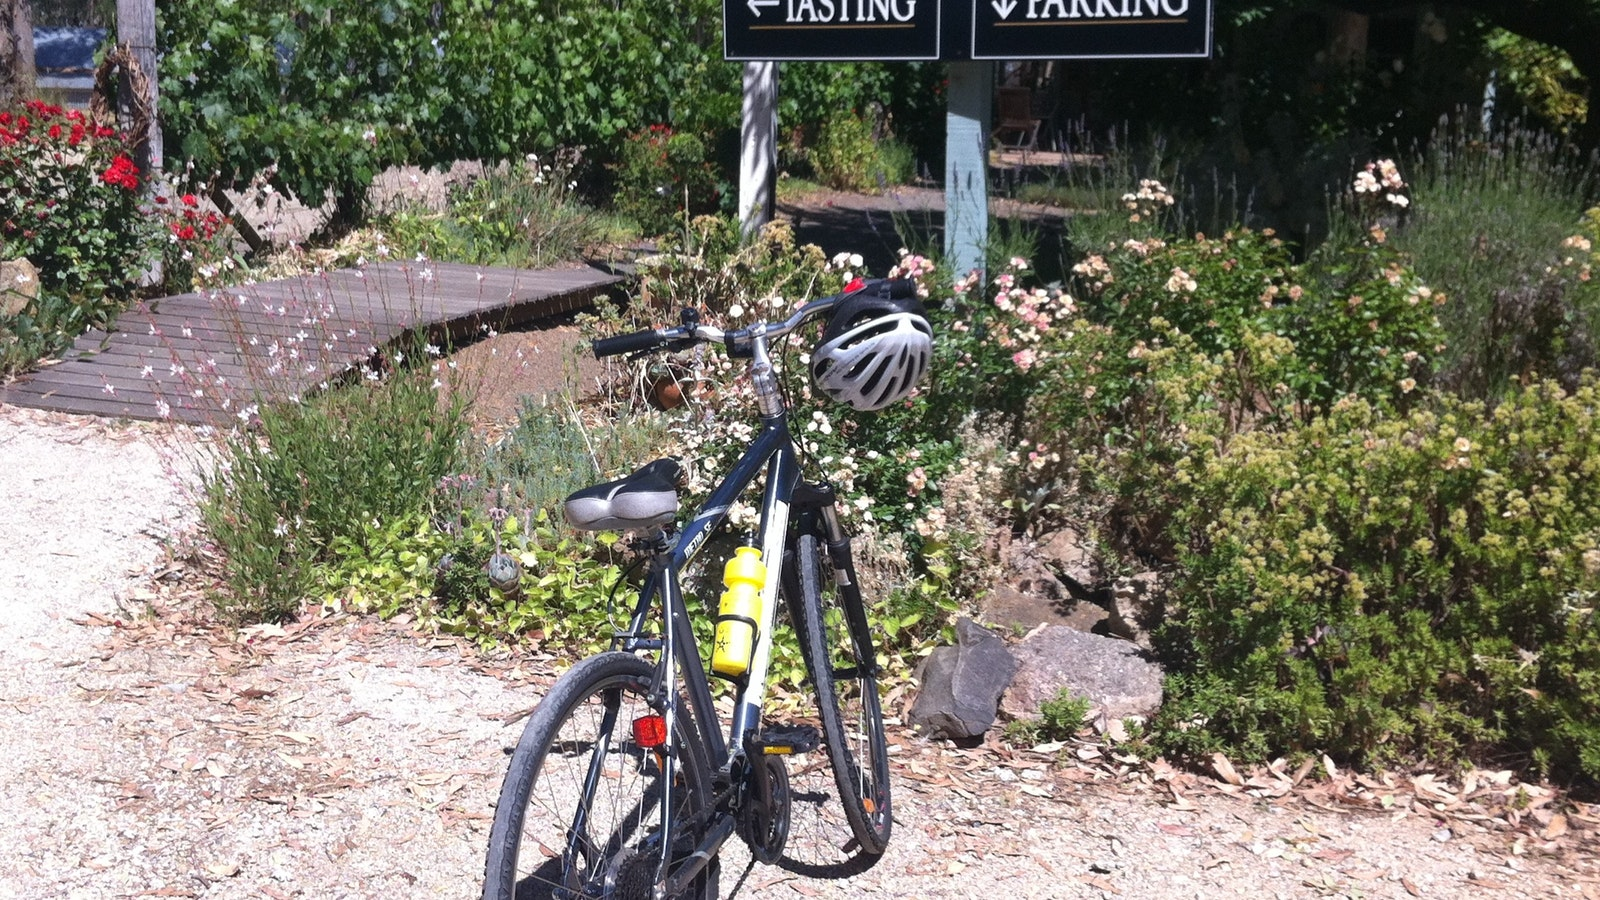 Cellar door stop on our cycling tour